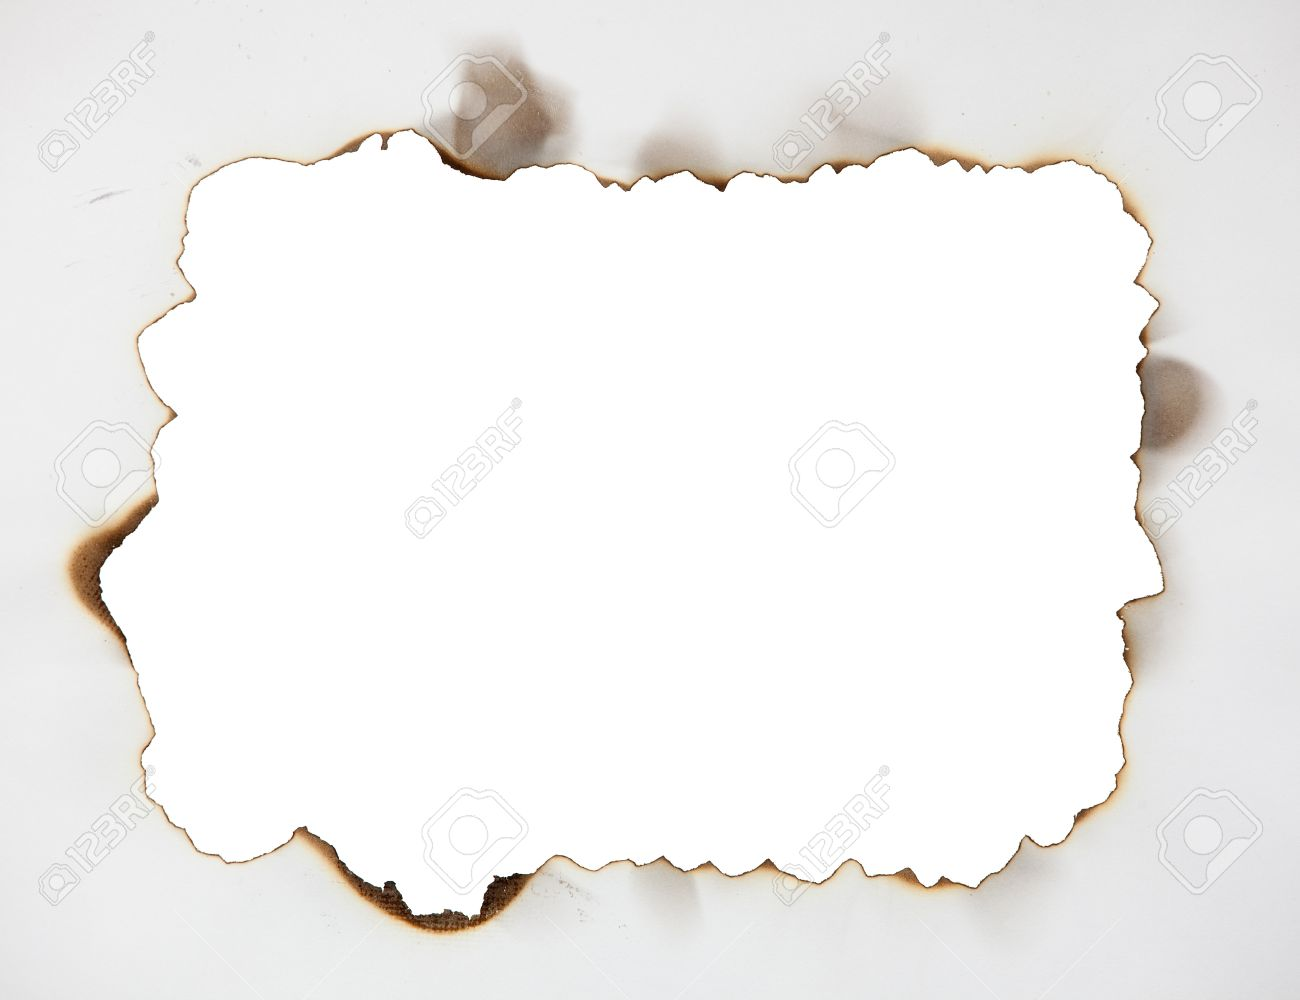 scorched frame on paper burnt hole stock photo 12940149